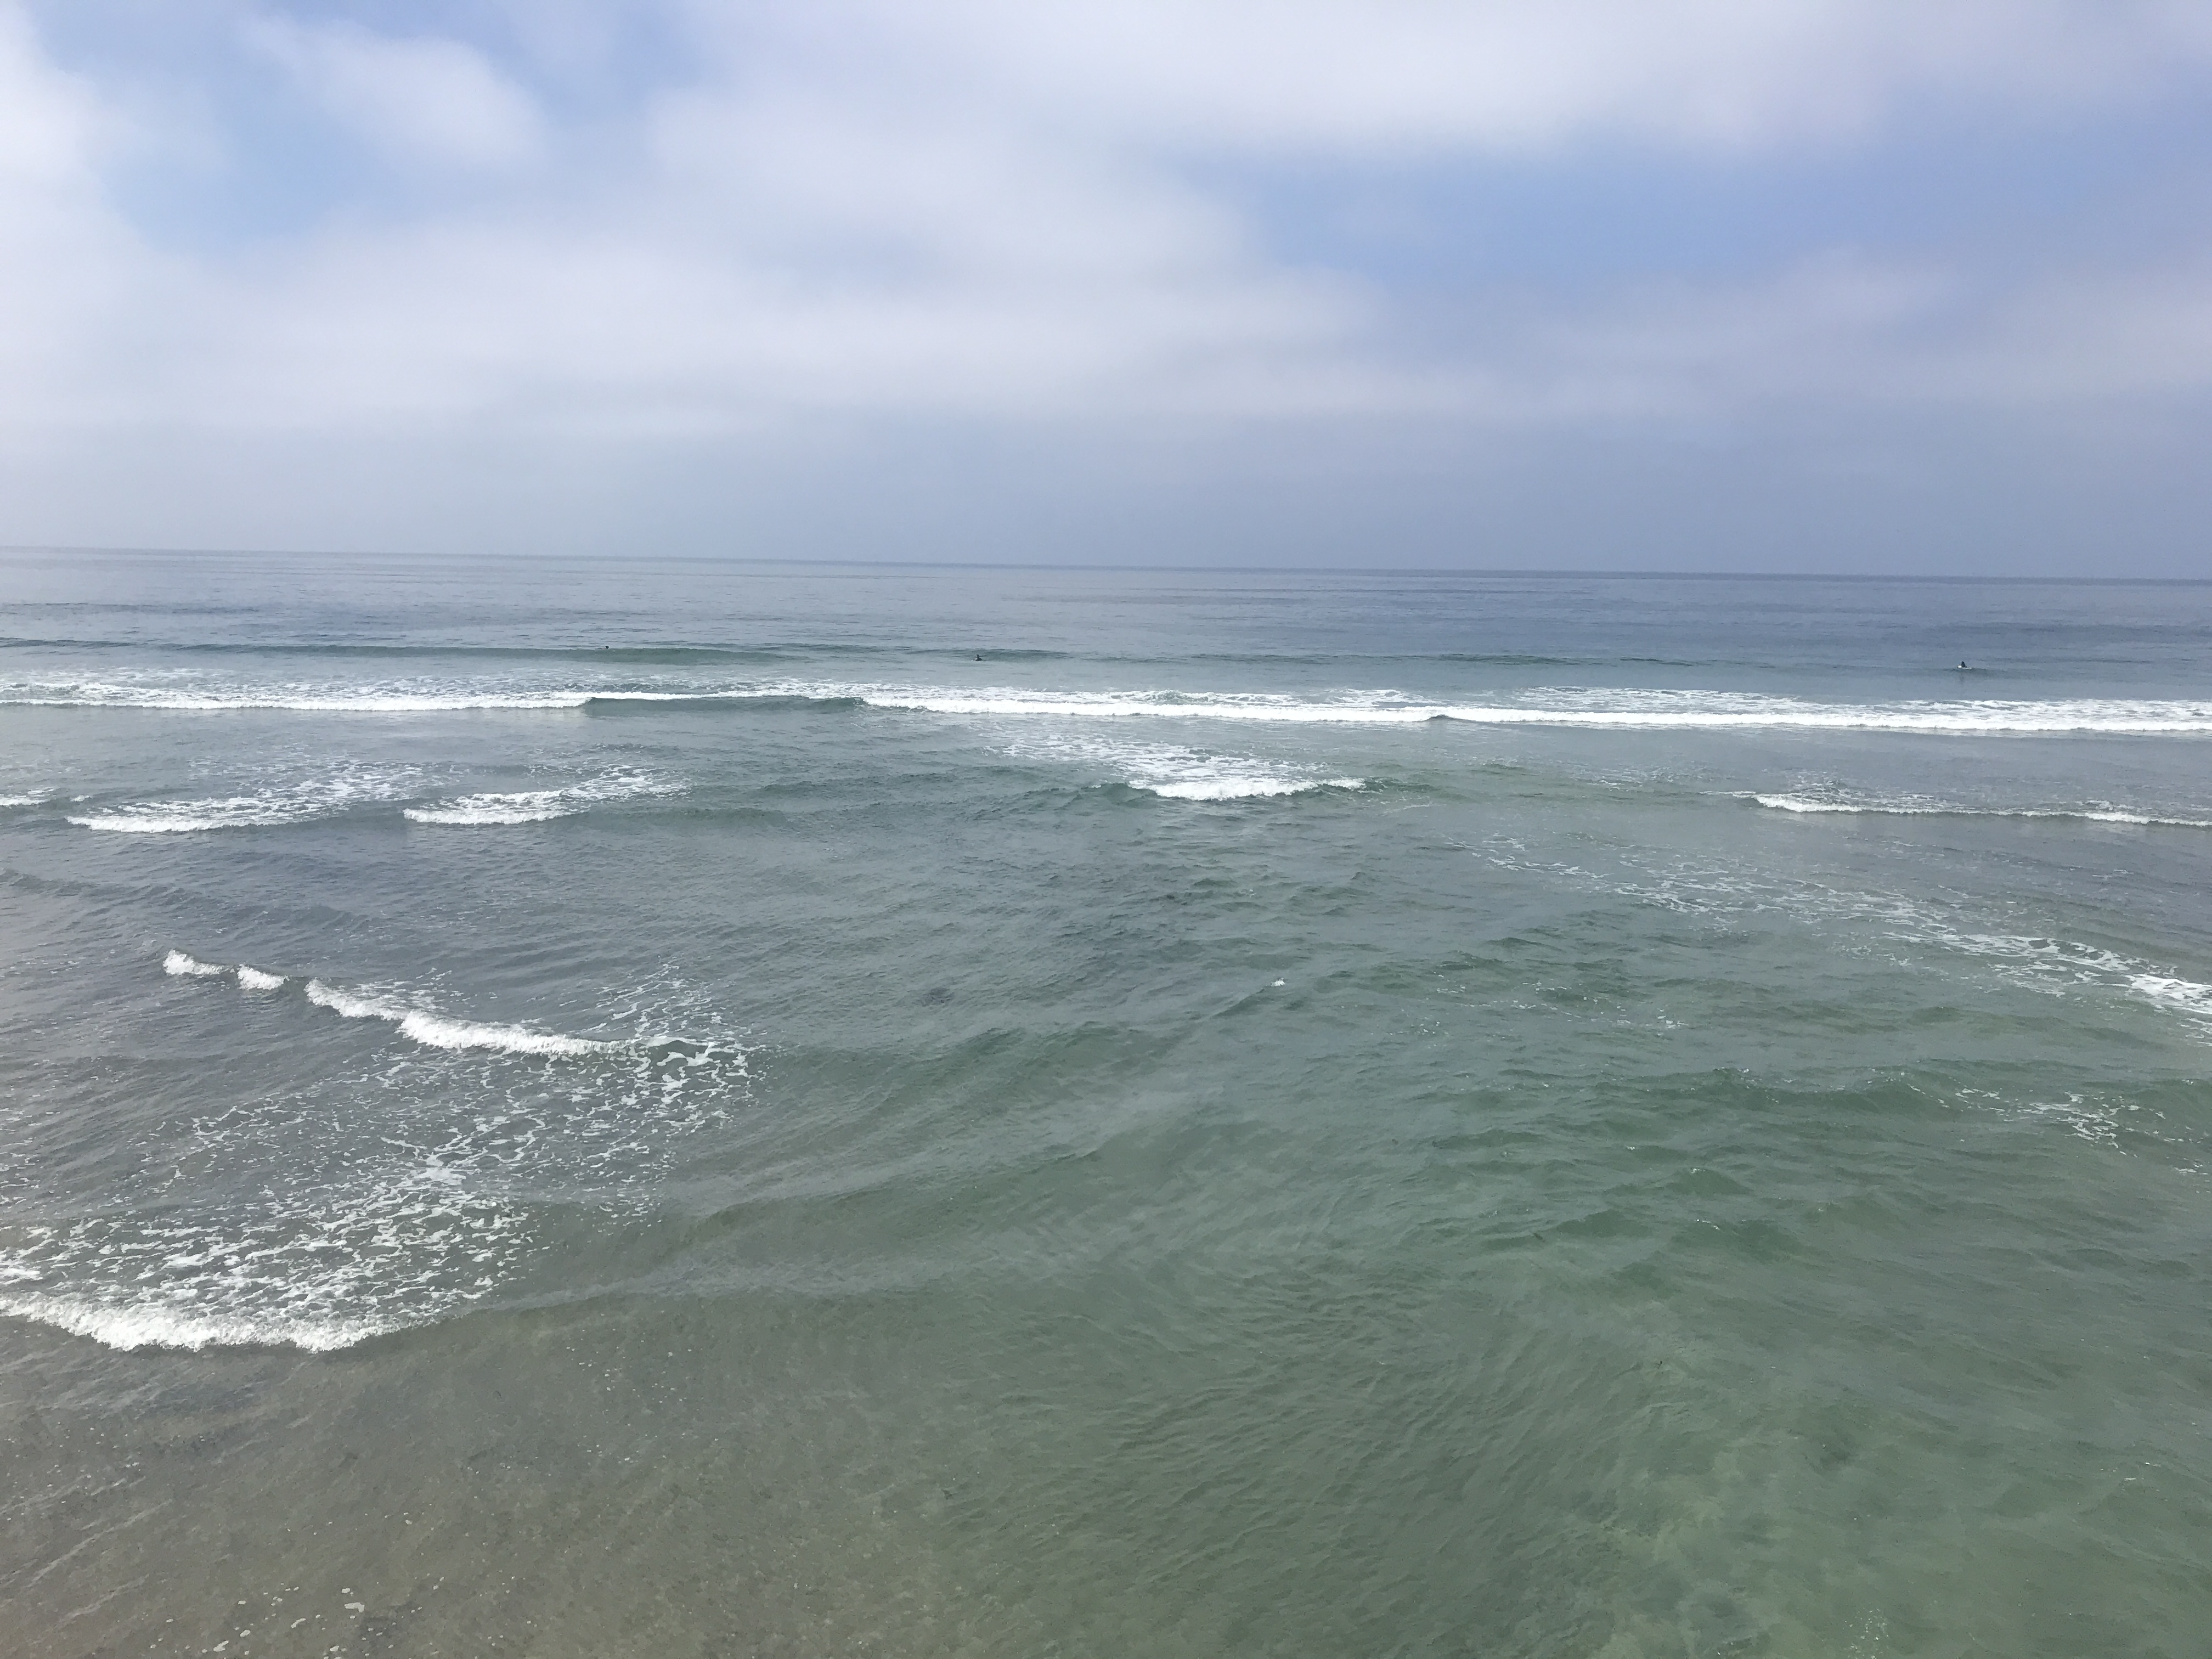 Waves in the Pacific Ocean at Imperial Beach California